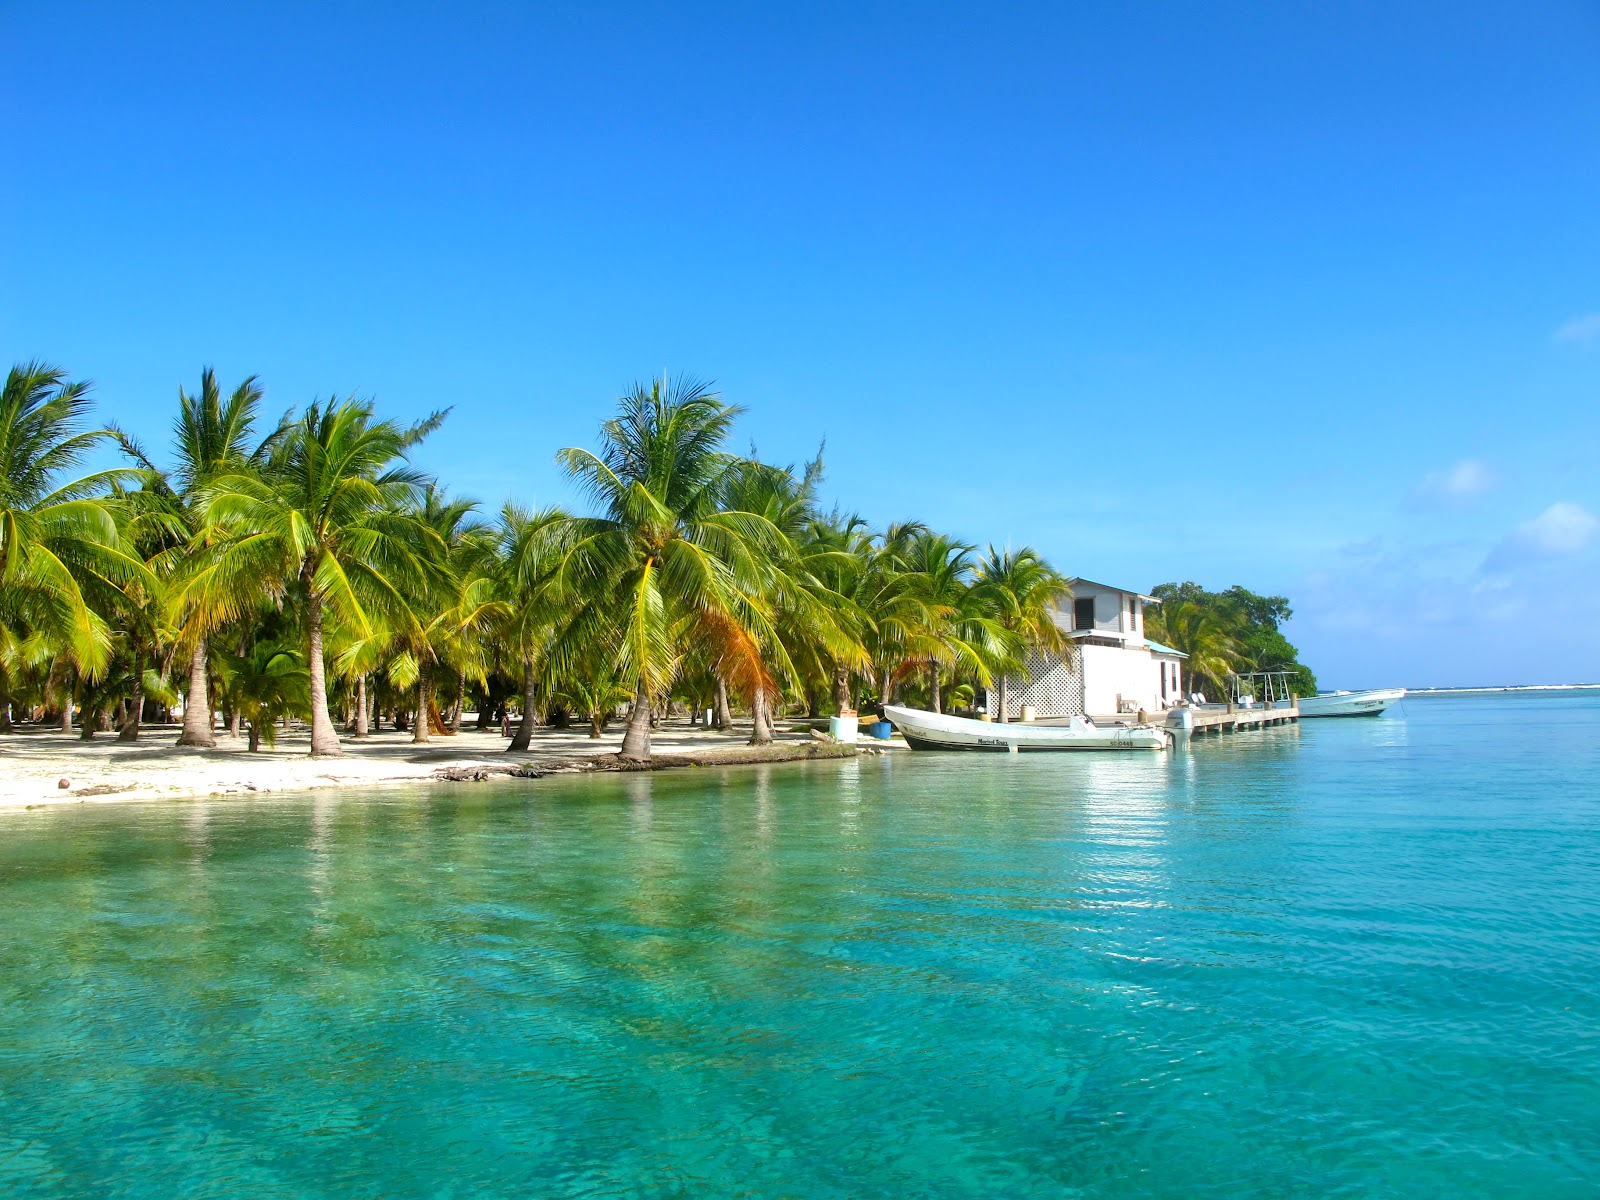 Belize: A Scuba Dive Site Dream Come True